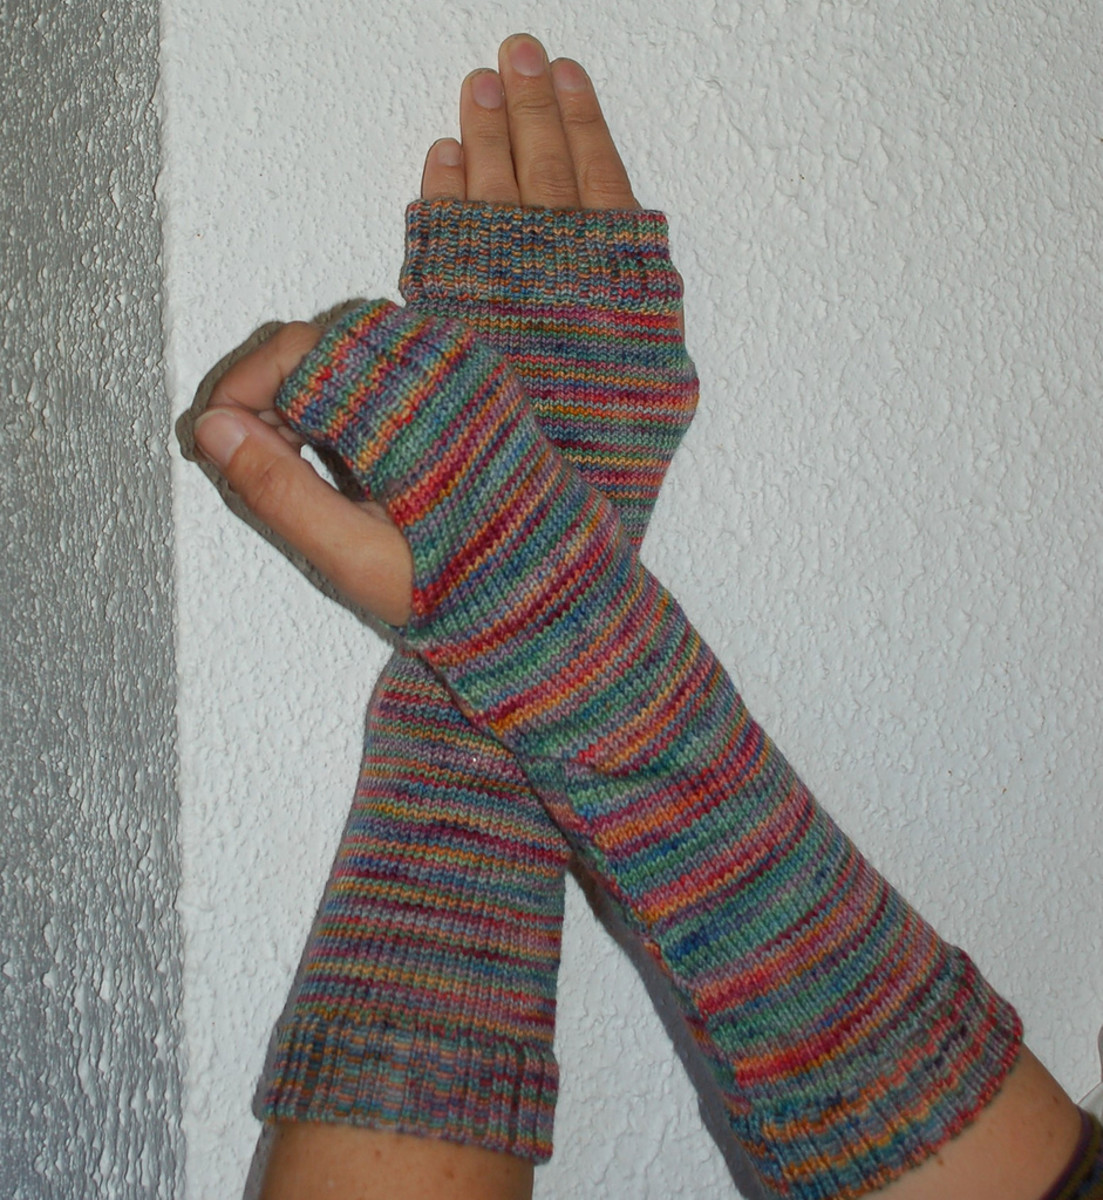 How to Knit Easy Armwarmers | FeltMagnet